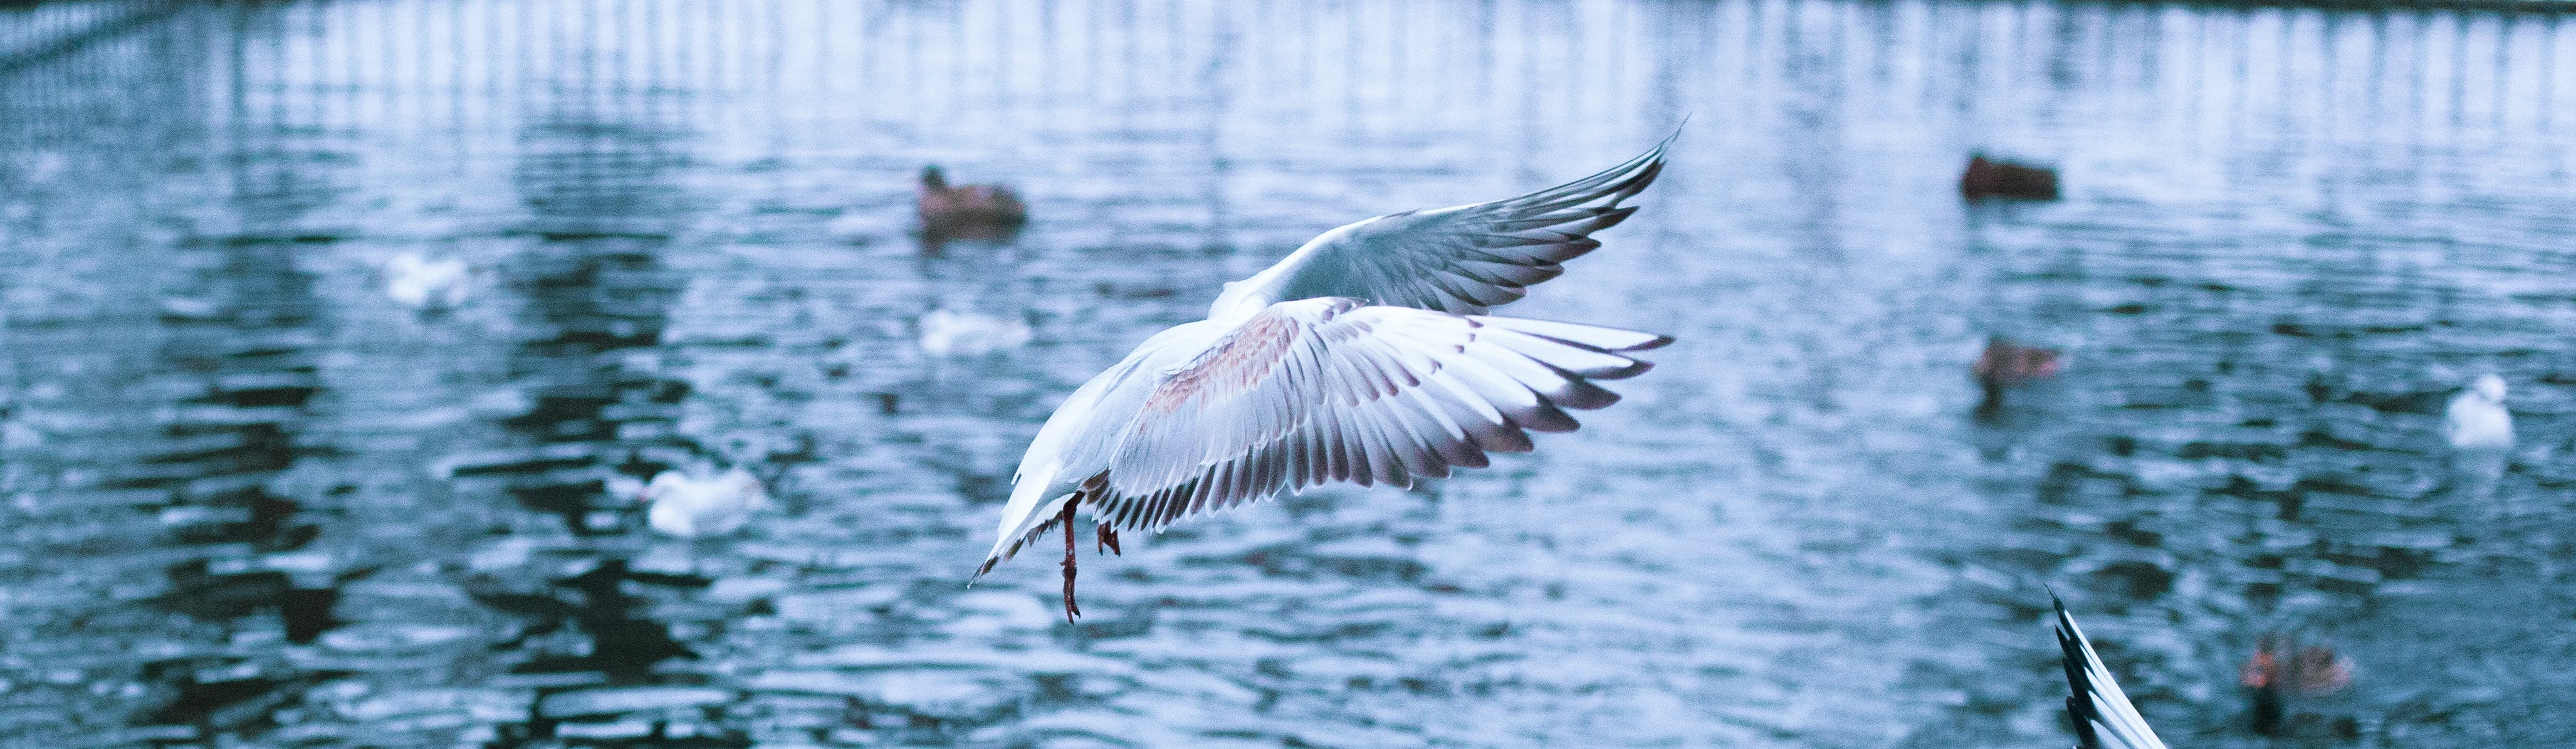 Free stock photo of birds, lake, water